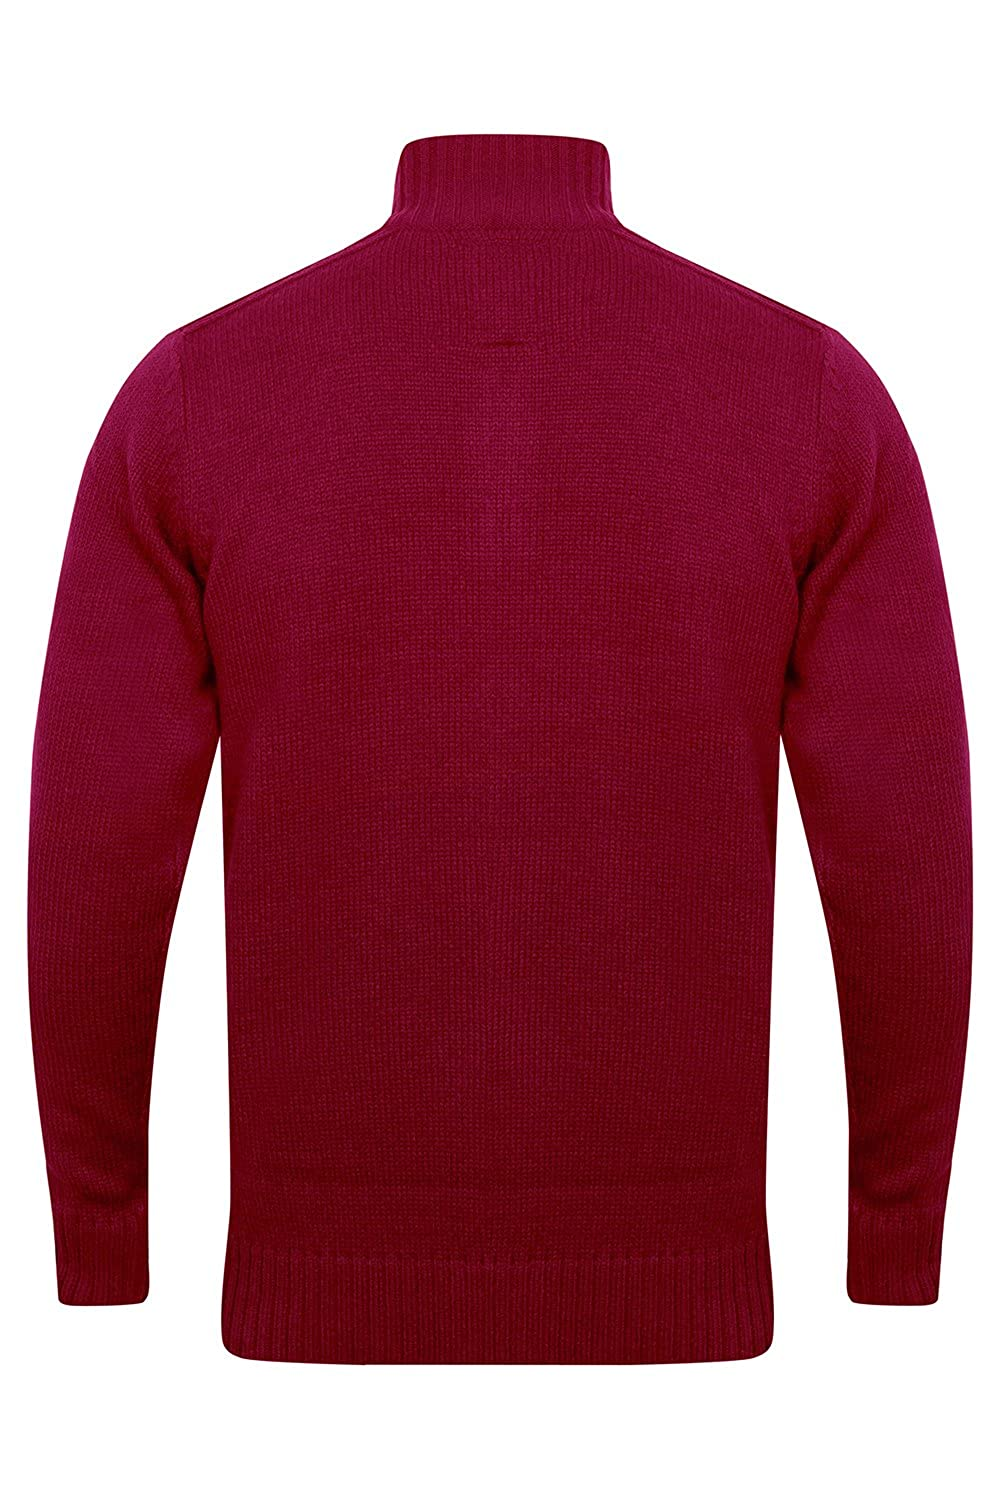 Mens Knitted Jumper Kensington Eastside Pullover Sweater Top Funnel Neck Winter